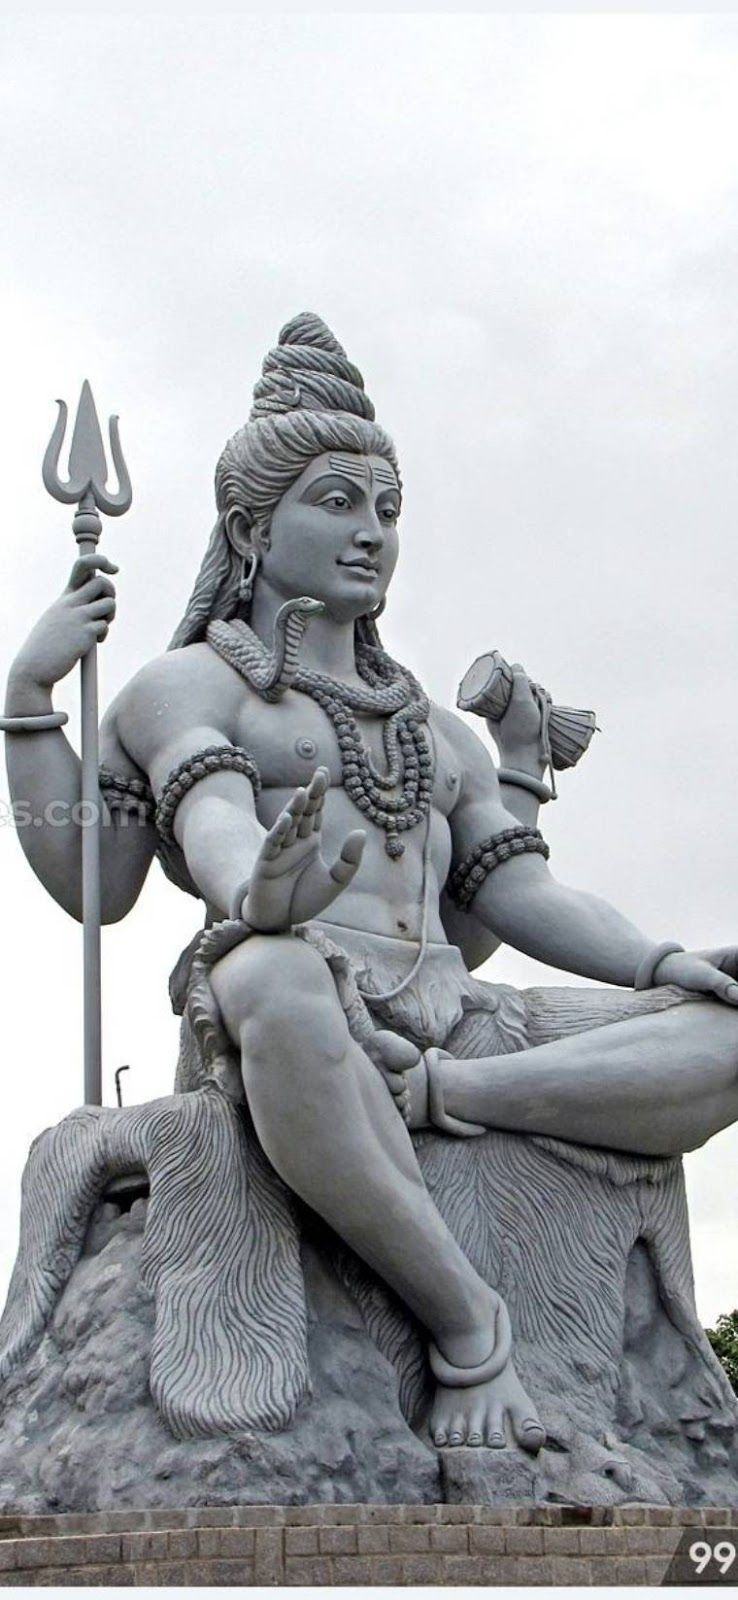 Most Unique And Ultra Hd Shiva Wallpapers Hindu God Mahadev Full Hd Wallpaper For Mobile Screen Mahakaal Wallpapers In 2020 With Images Lord Shiva Hd Wallpaper Shiva Lord Wallpapers